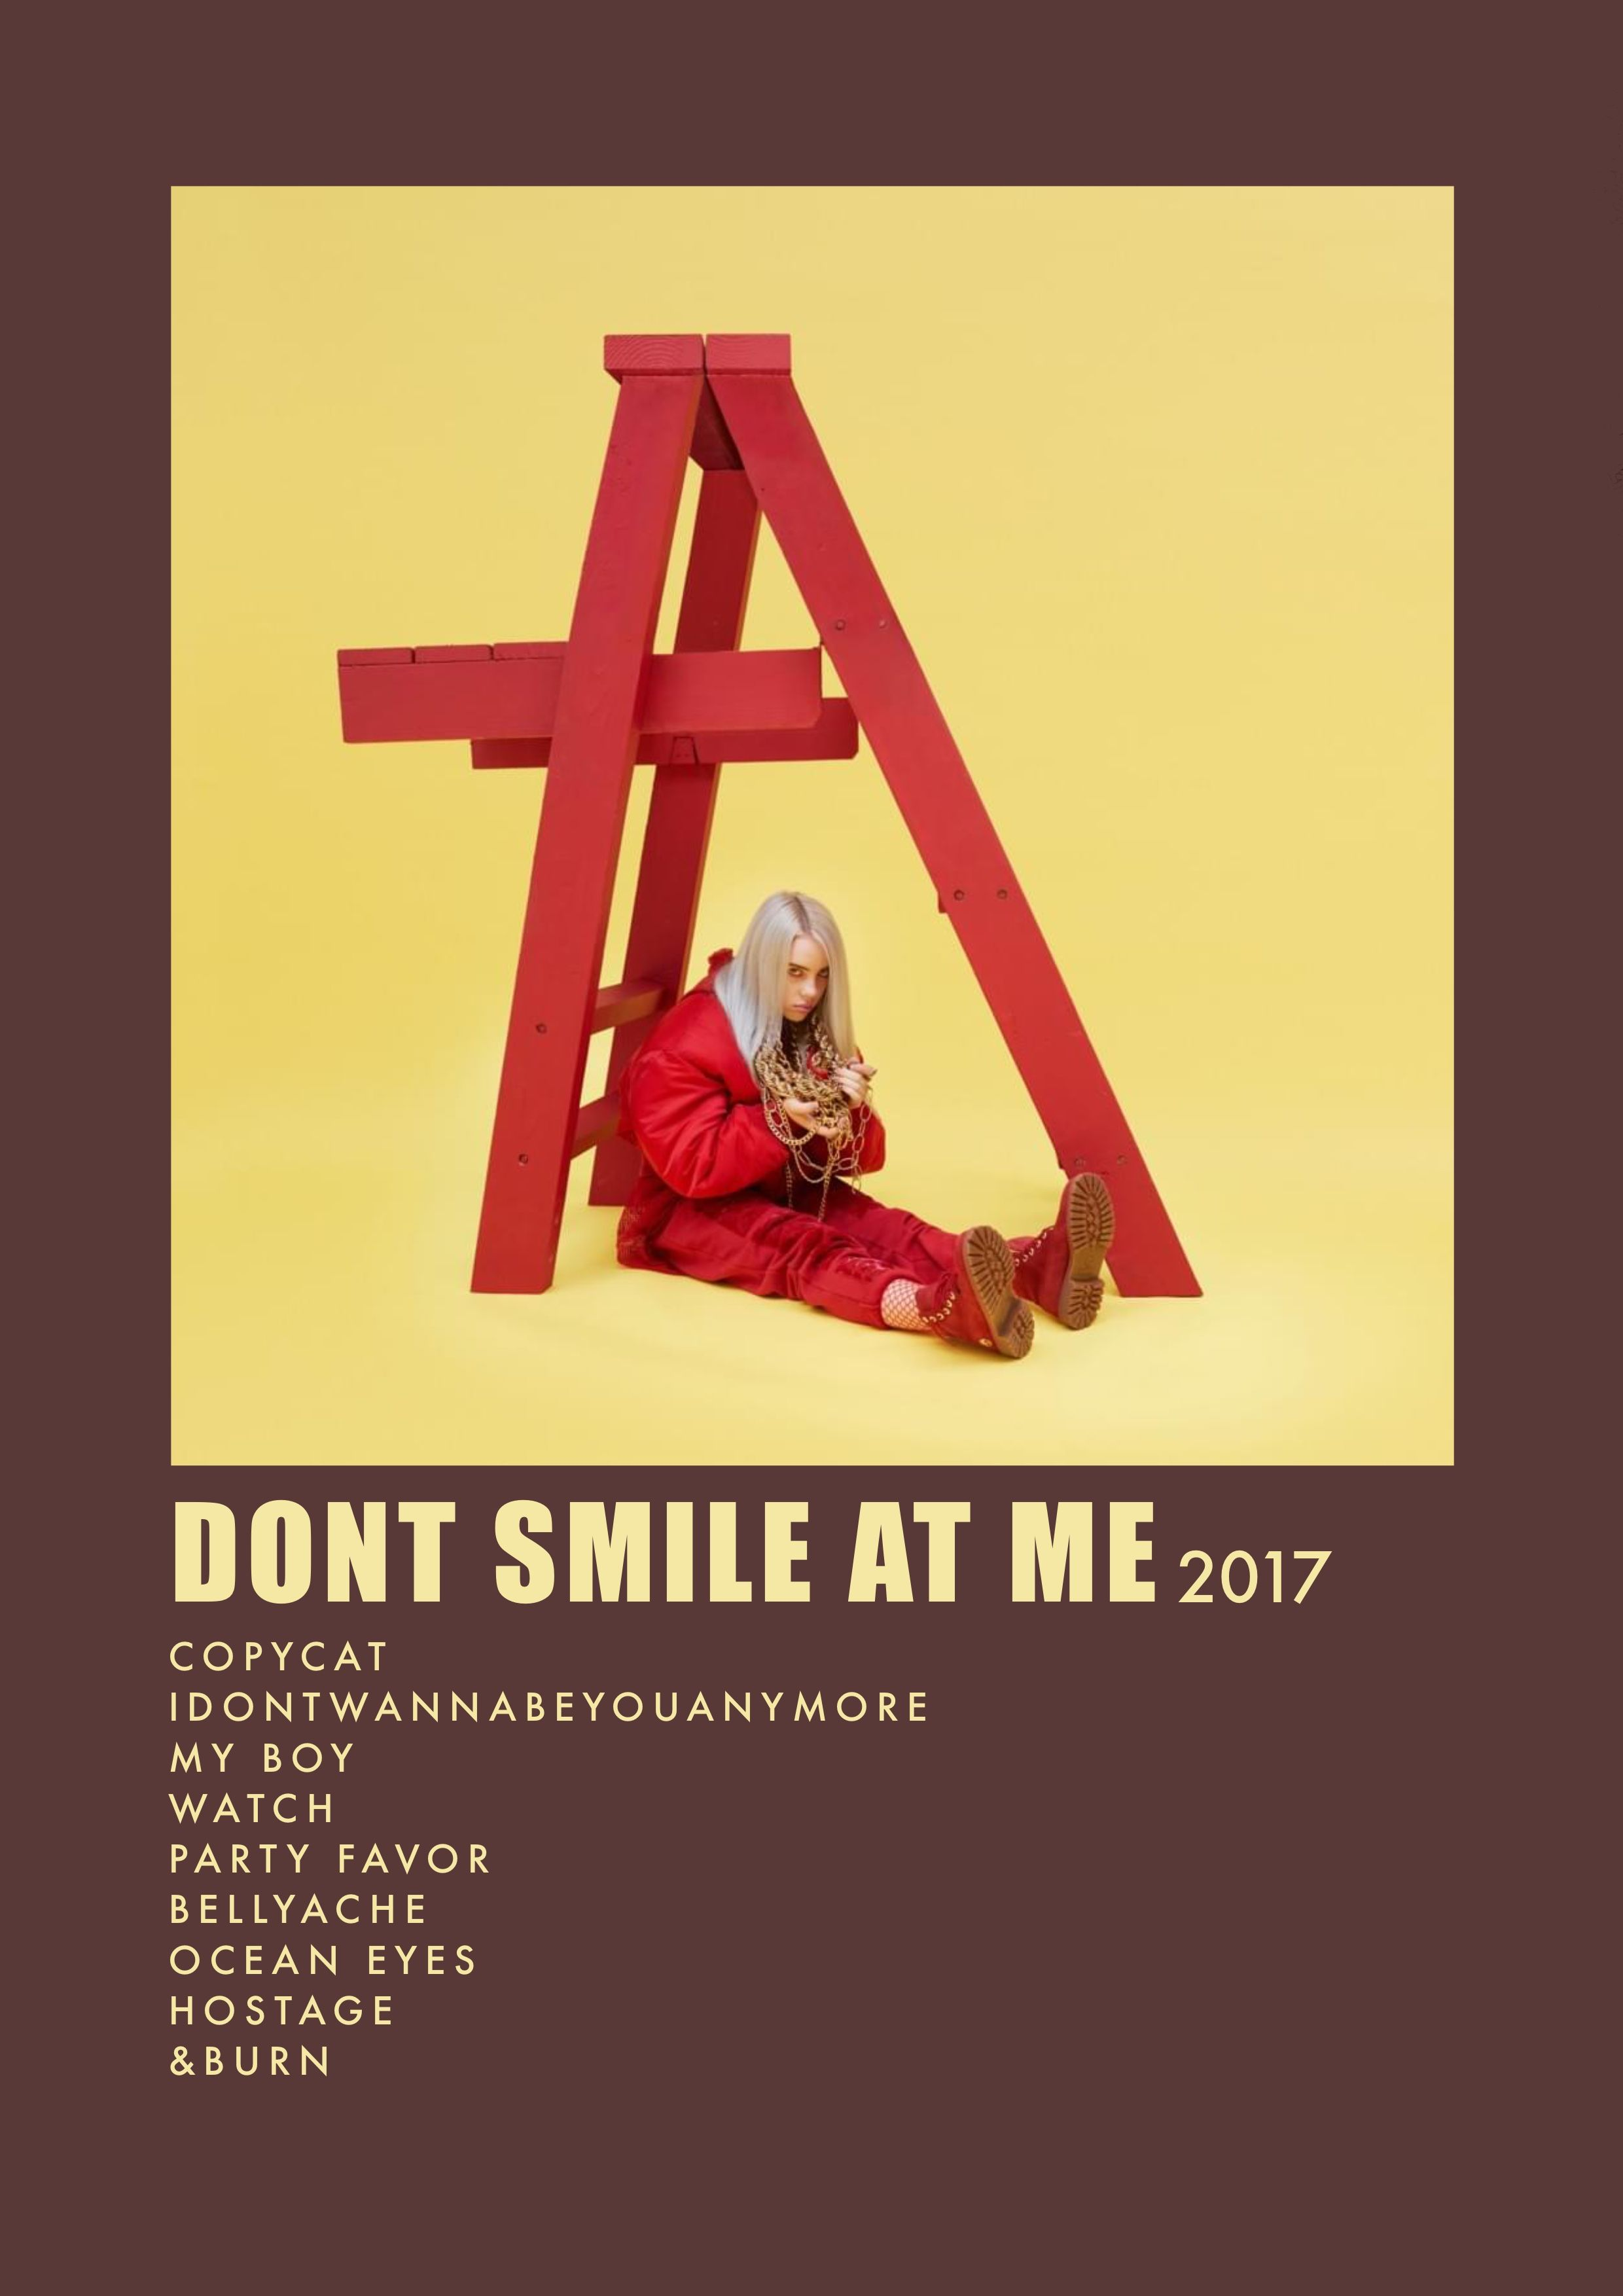 Dont Smile At Me Album Poster In 2020 Vintage Music Posters Movie Poster Wall Music Poster Design